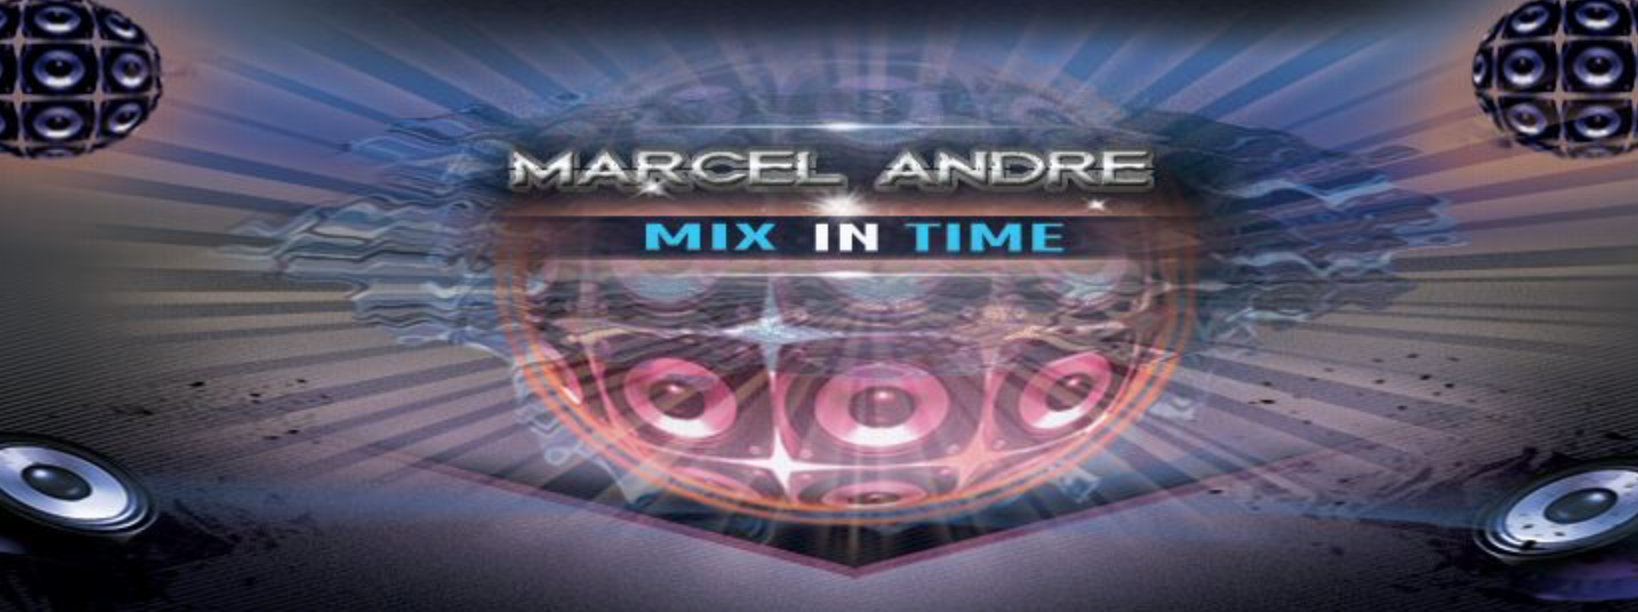 mixintime by marcel andrew